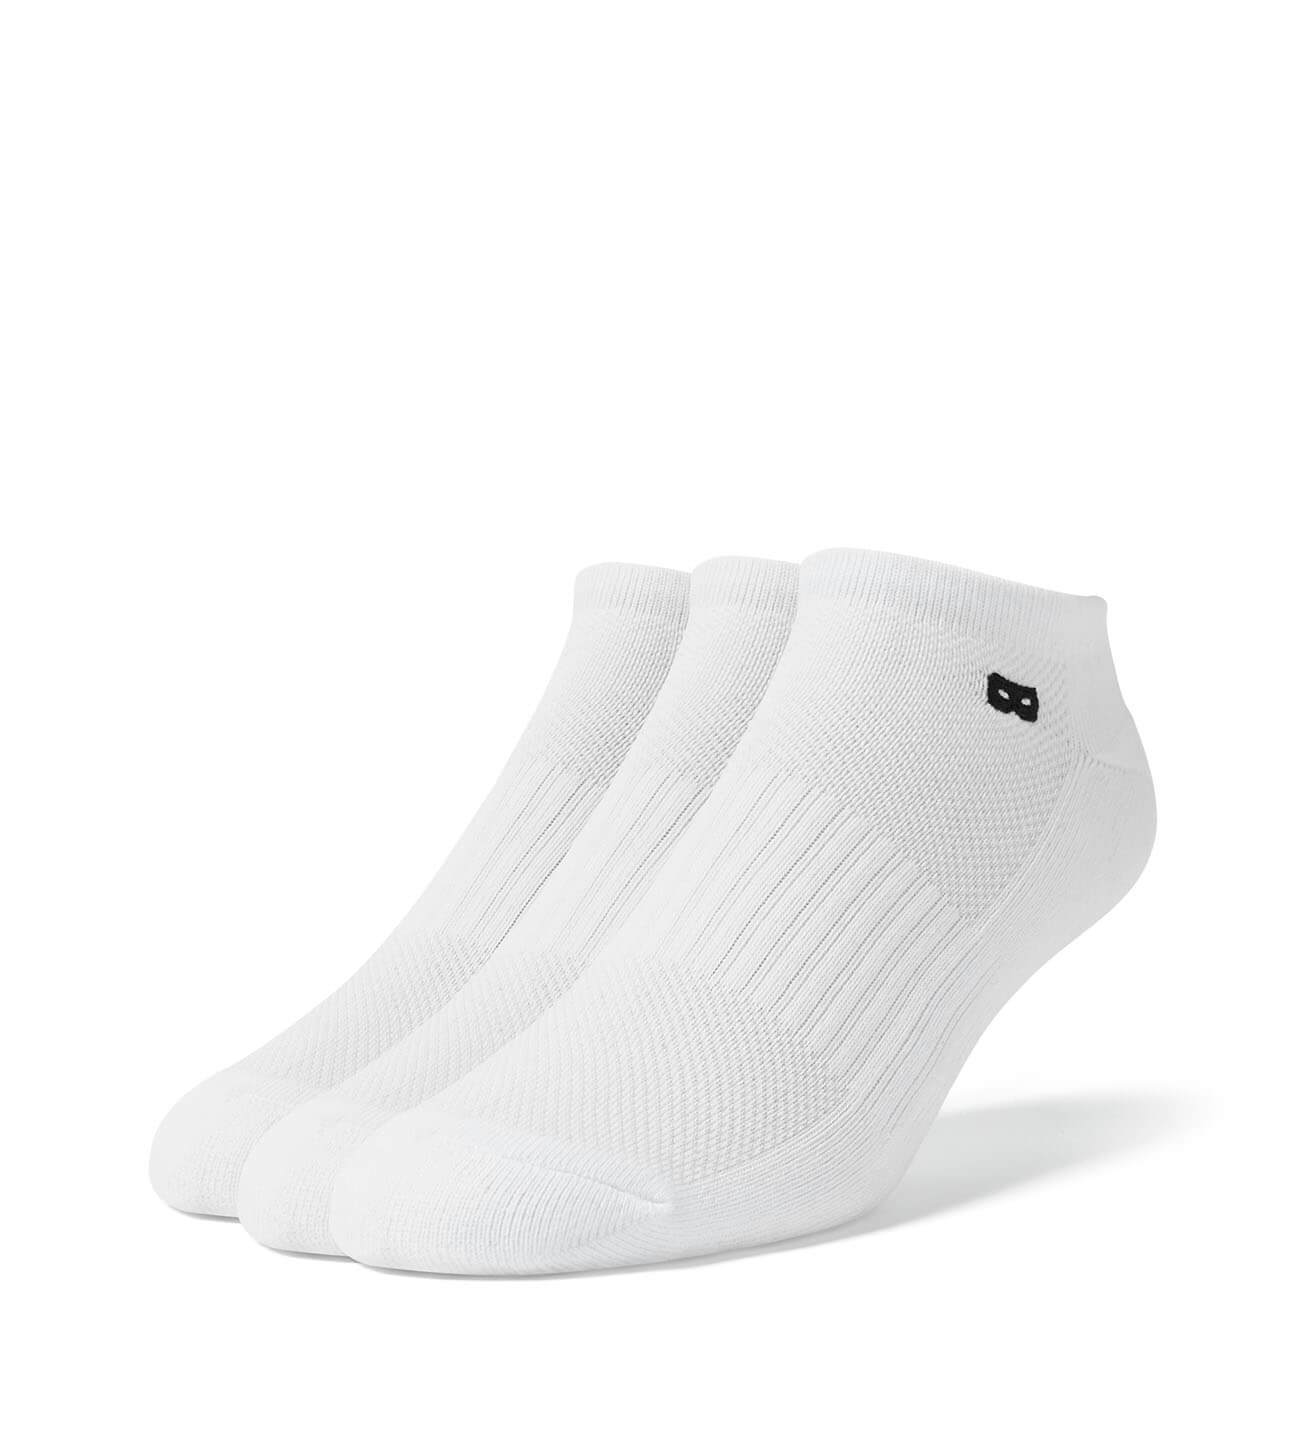 Whiteout Women's Low-Cut Socks 3 Pack